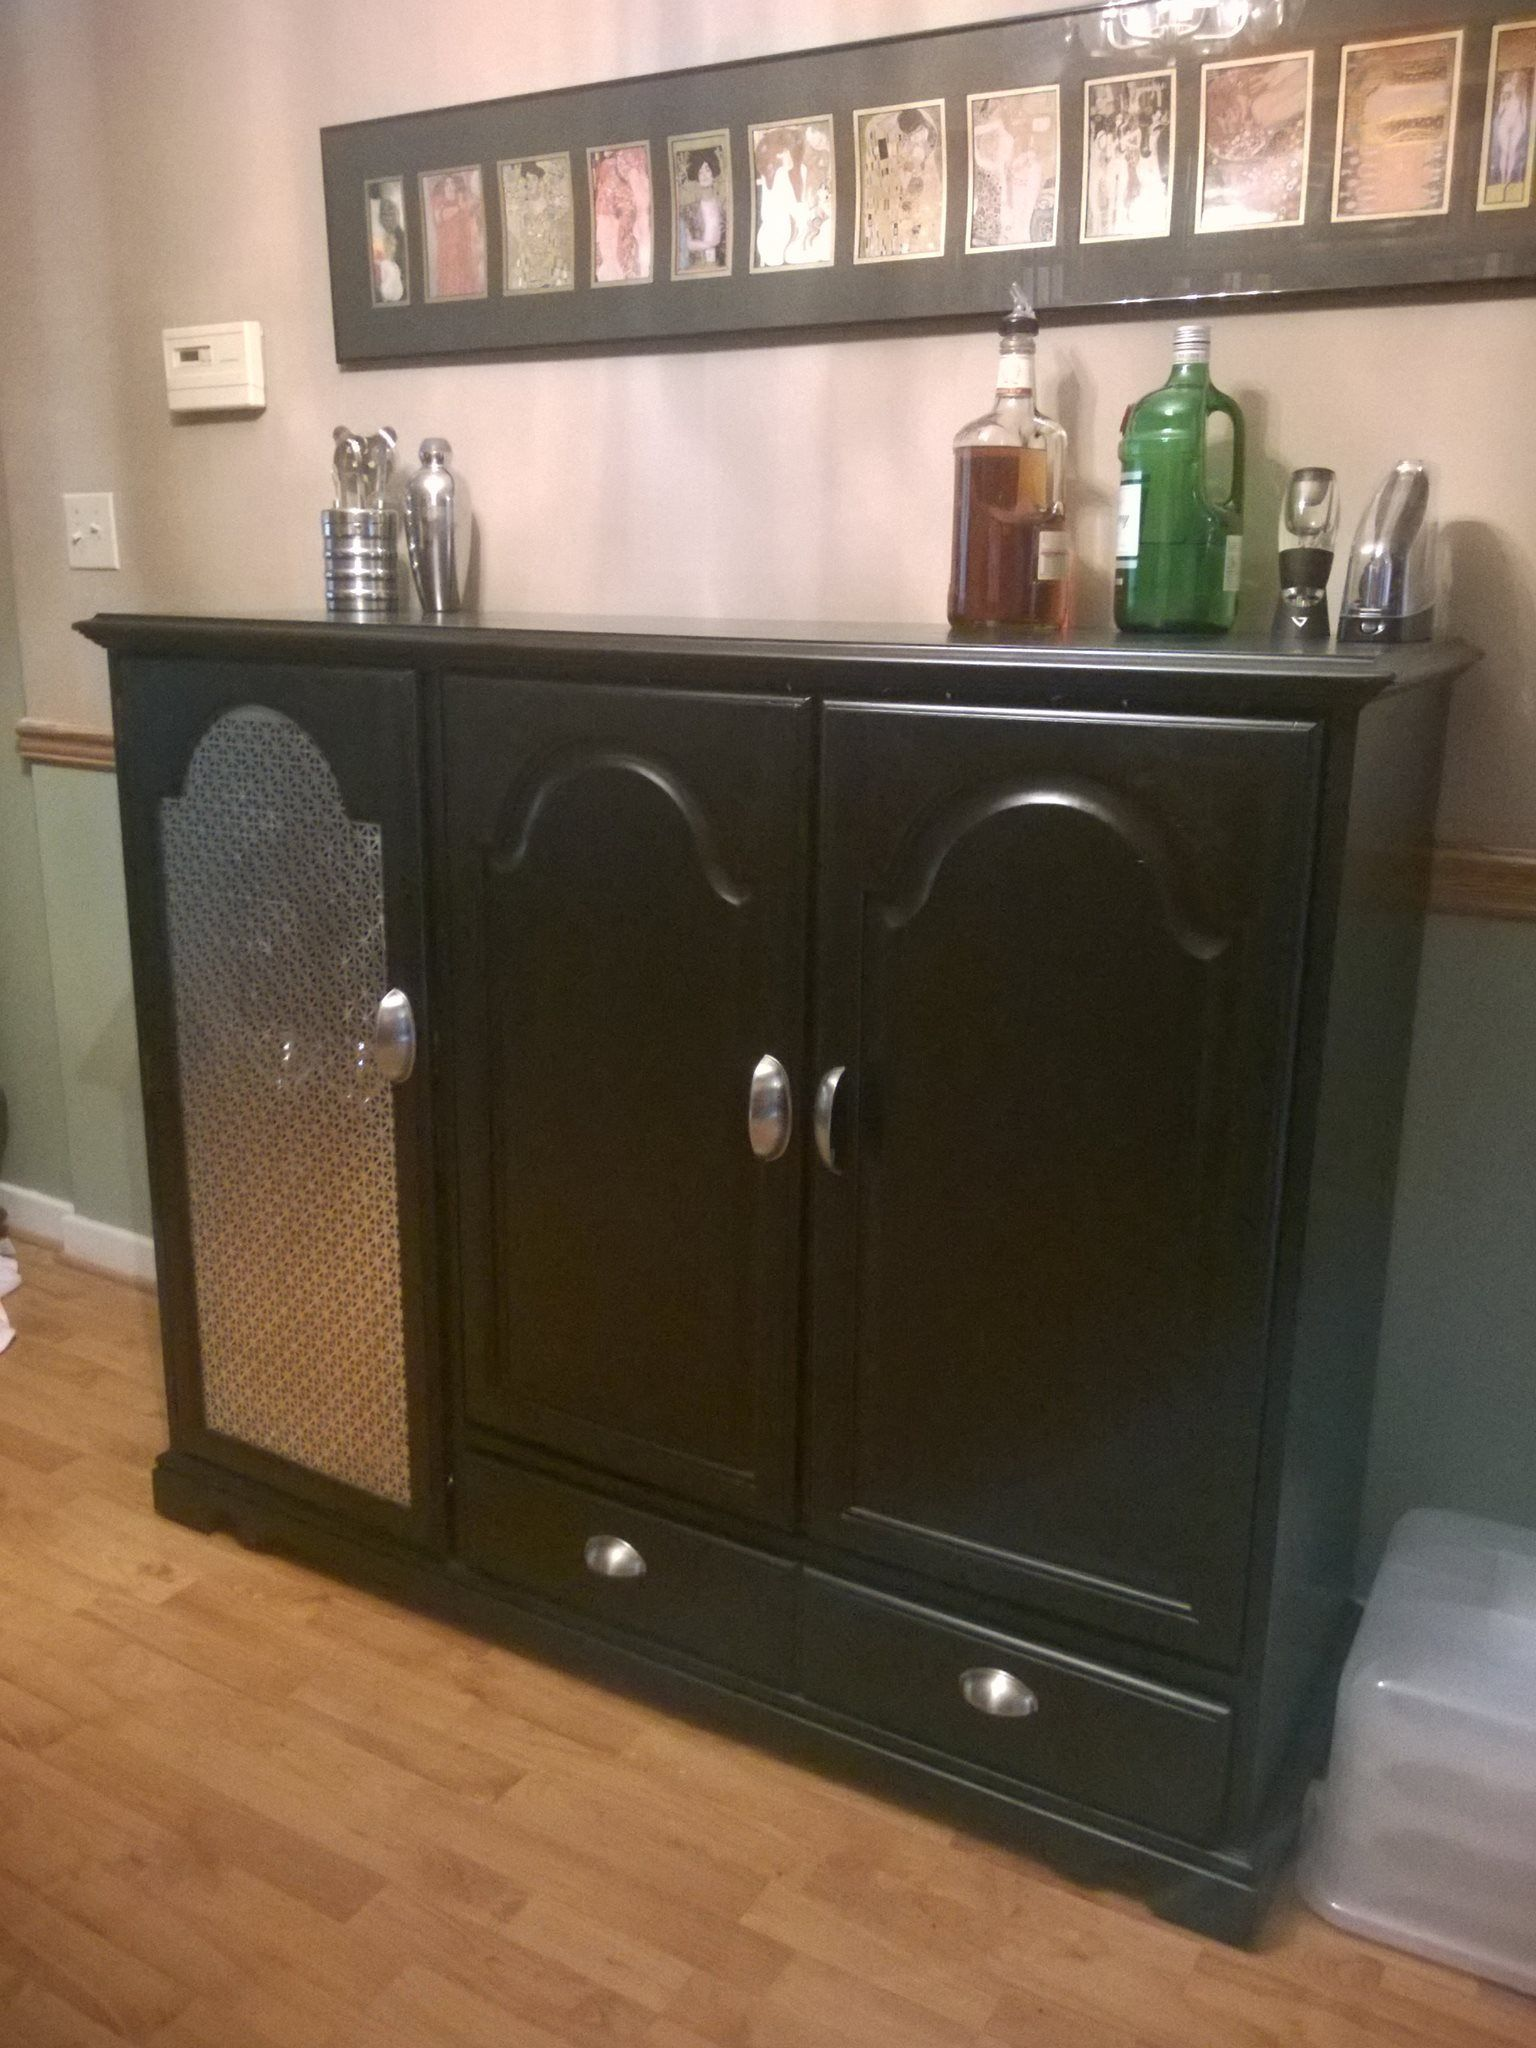 How to make a kick-ass DIY bar from an old media cabinet